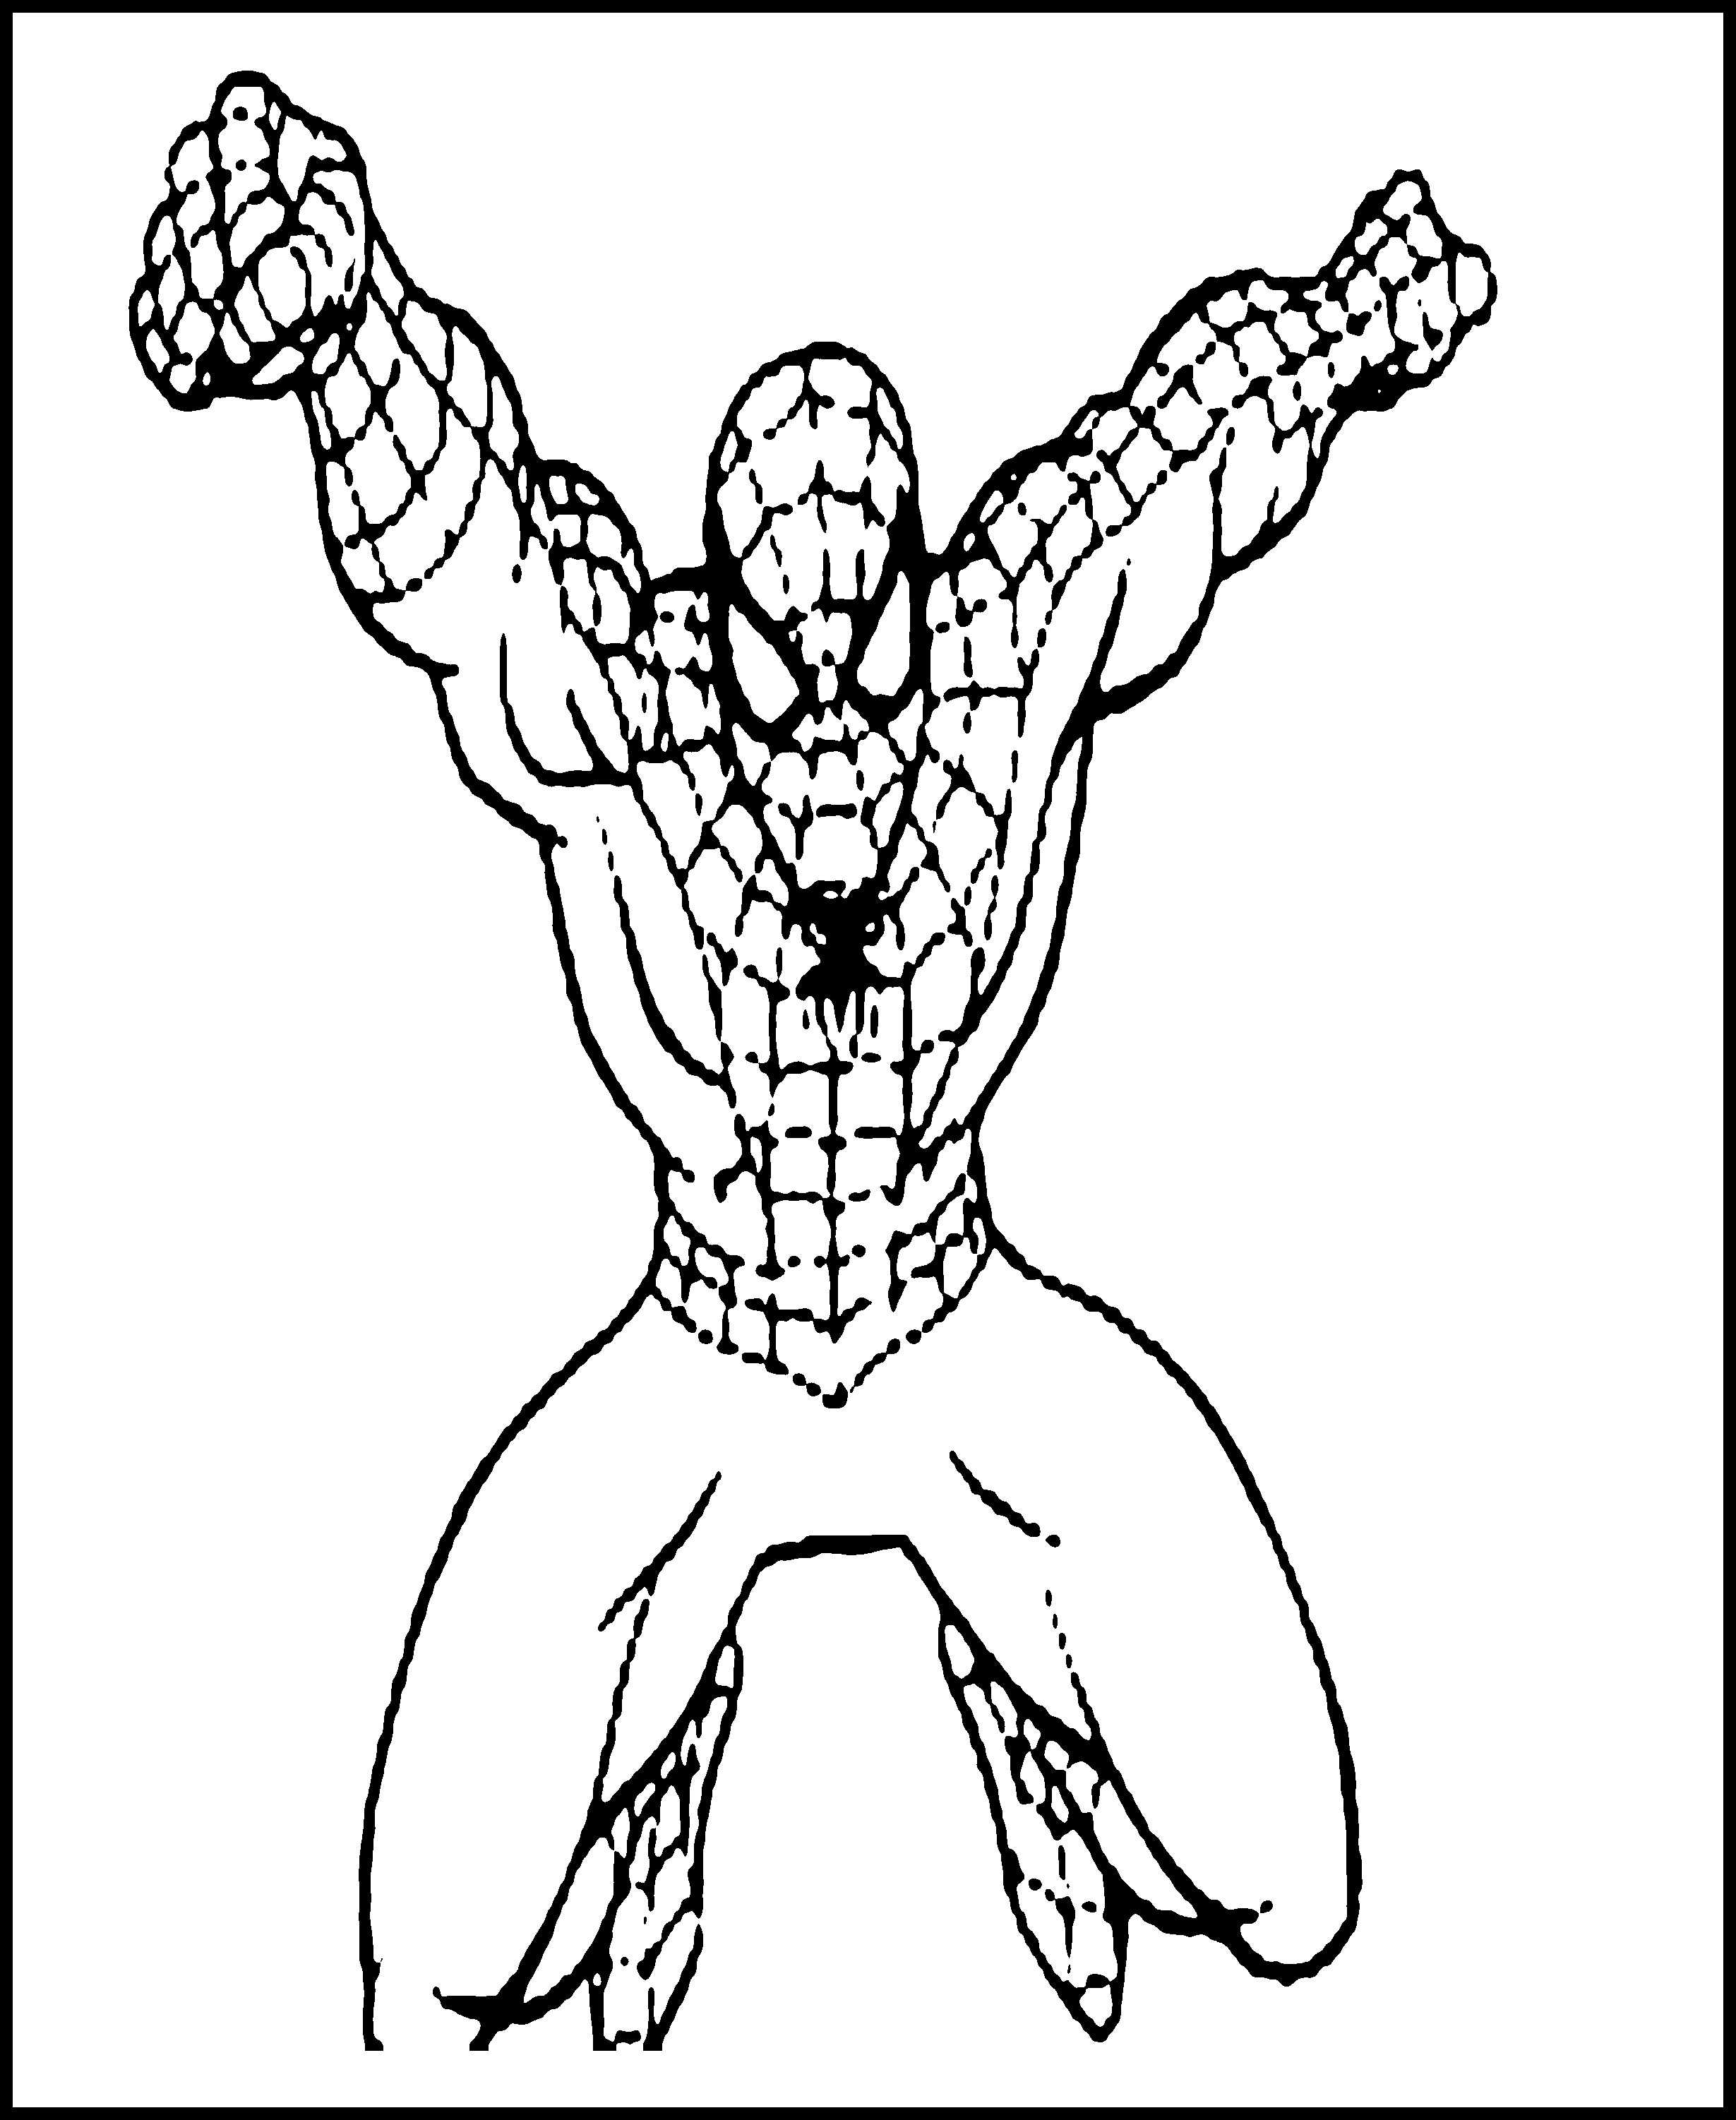 Free Printable Spiderman Coloring Pages For Kids - Free Printable Spiderman Pictures